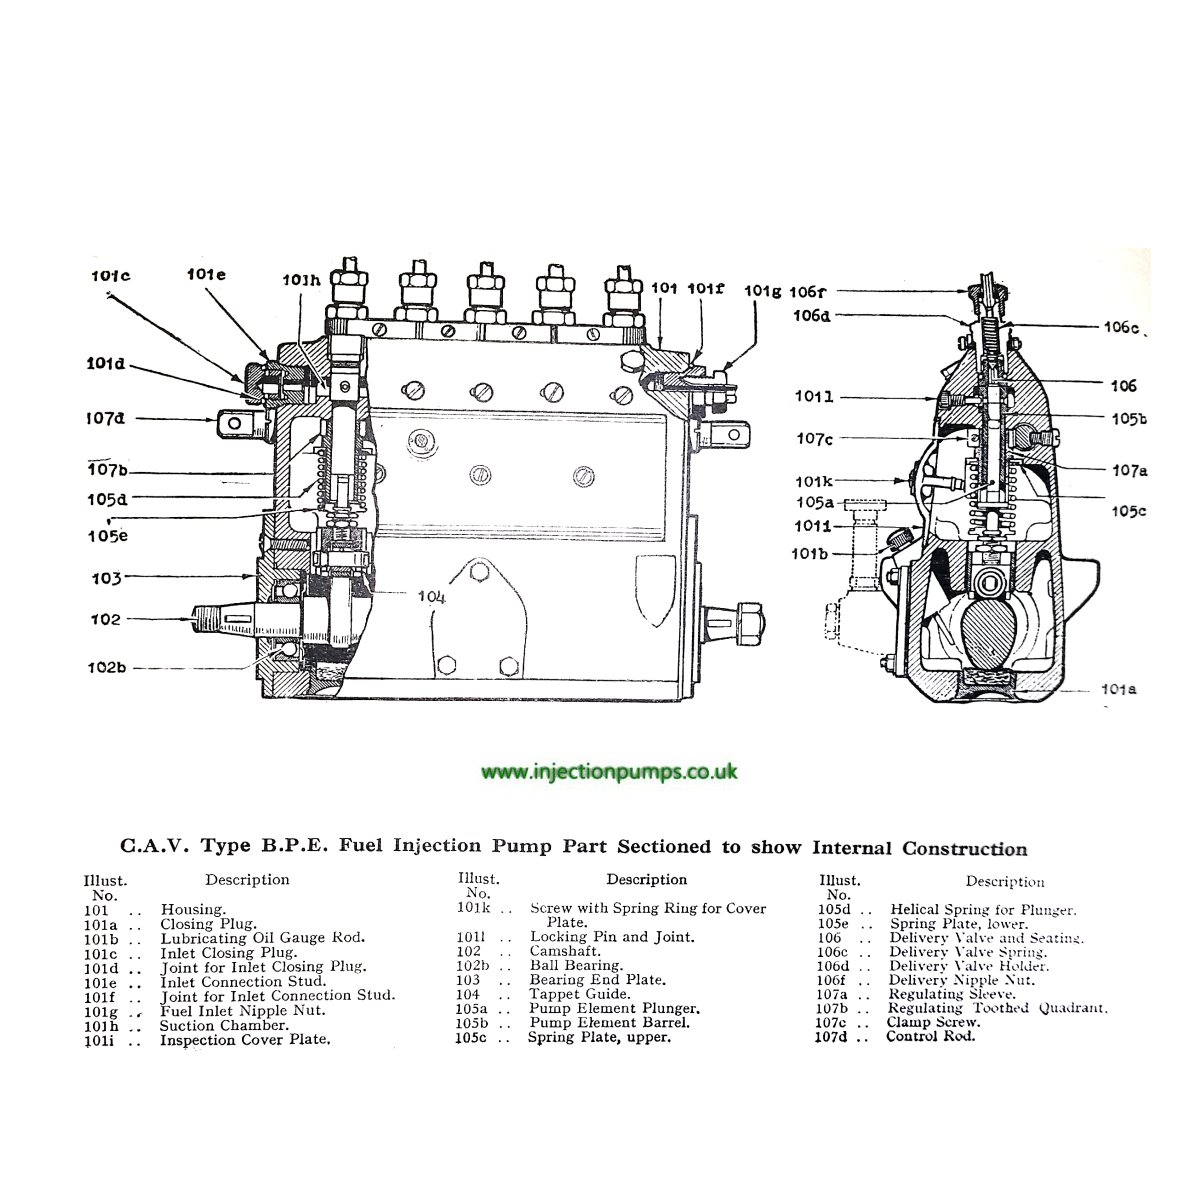 Cav Fuel Injection Pump Diaphragm And Piston For Perkins Engines With Cav Bpe3a Bpe4a And Bpe6a